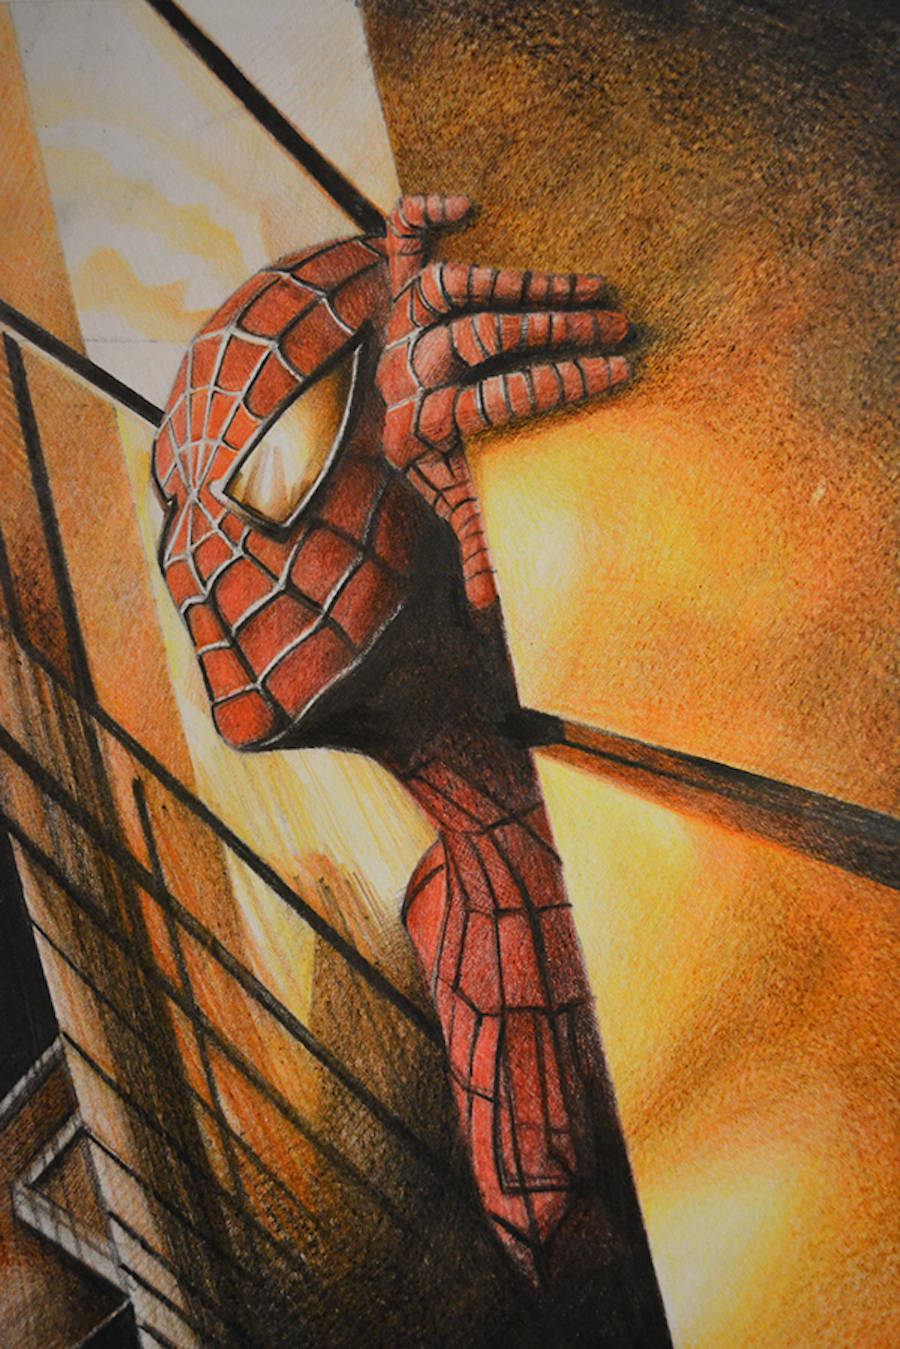 Famous Movie Posters Reproduced with Color Pencils